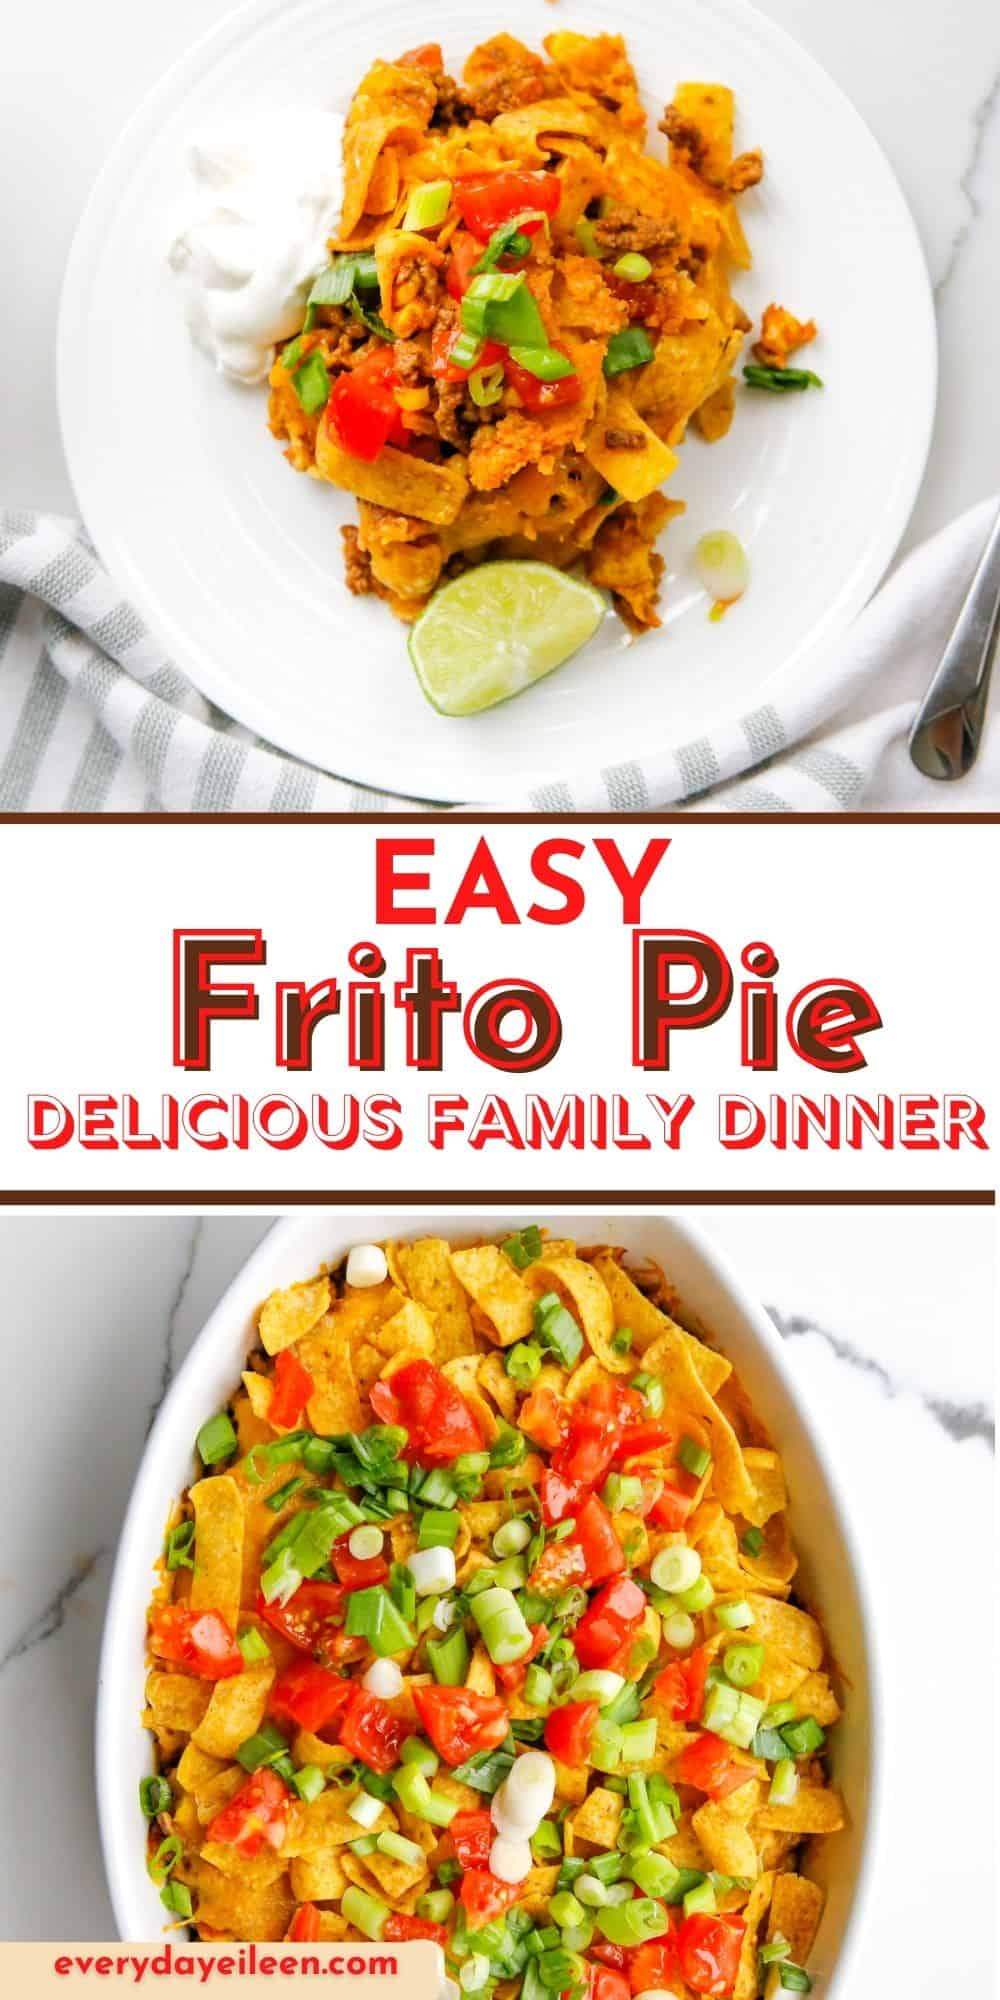 Frito Pie is a flavorful ground beef casserole loaded with taco flavors, cheese, and Fritos. These are so many variations to this taco casserole. It's great for family dinners, Cinco de Mayo, tailgate parties.  via @/everydayeileen/